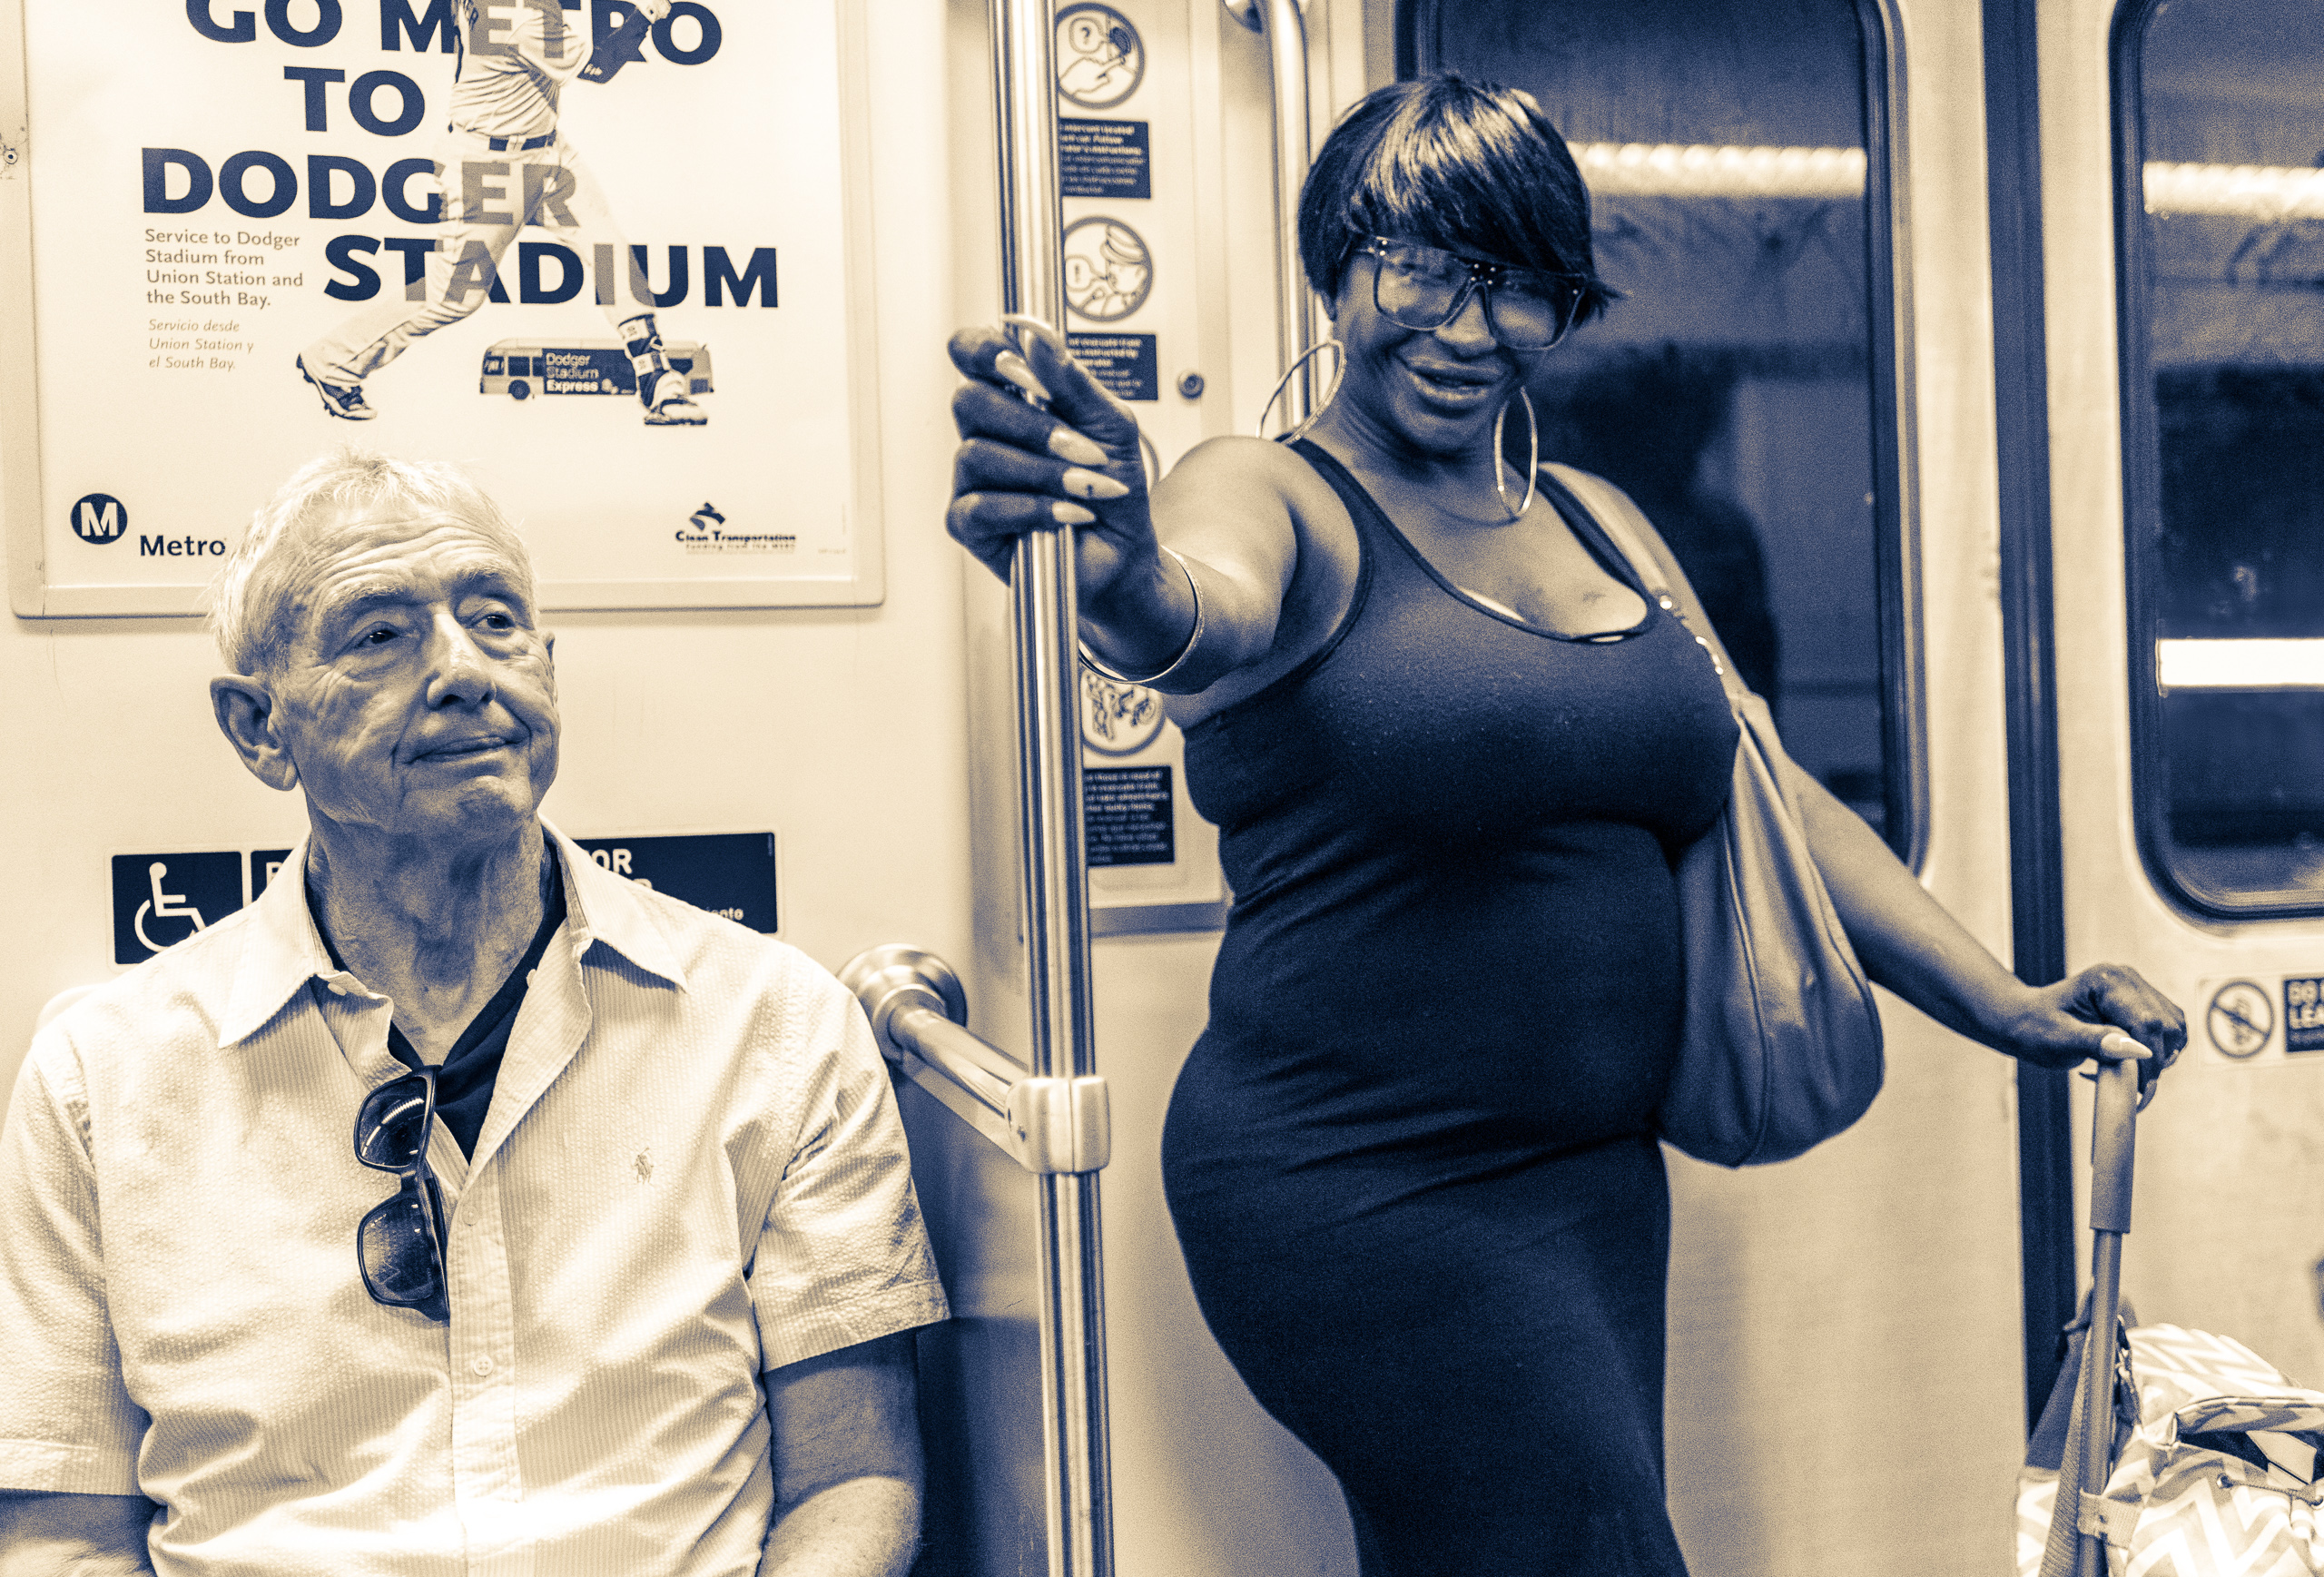 on a Metro Red Line train car from Hollywood to Downtown LA, a Black woman in a black dress stands next to a White man in a white shirt